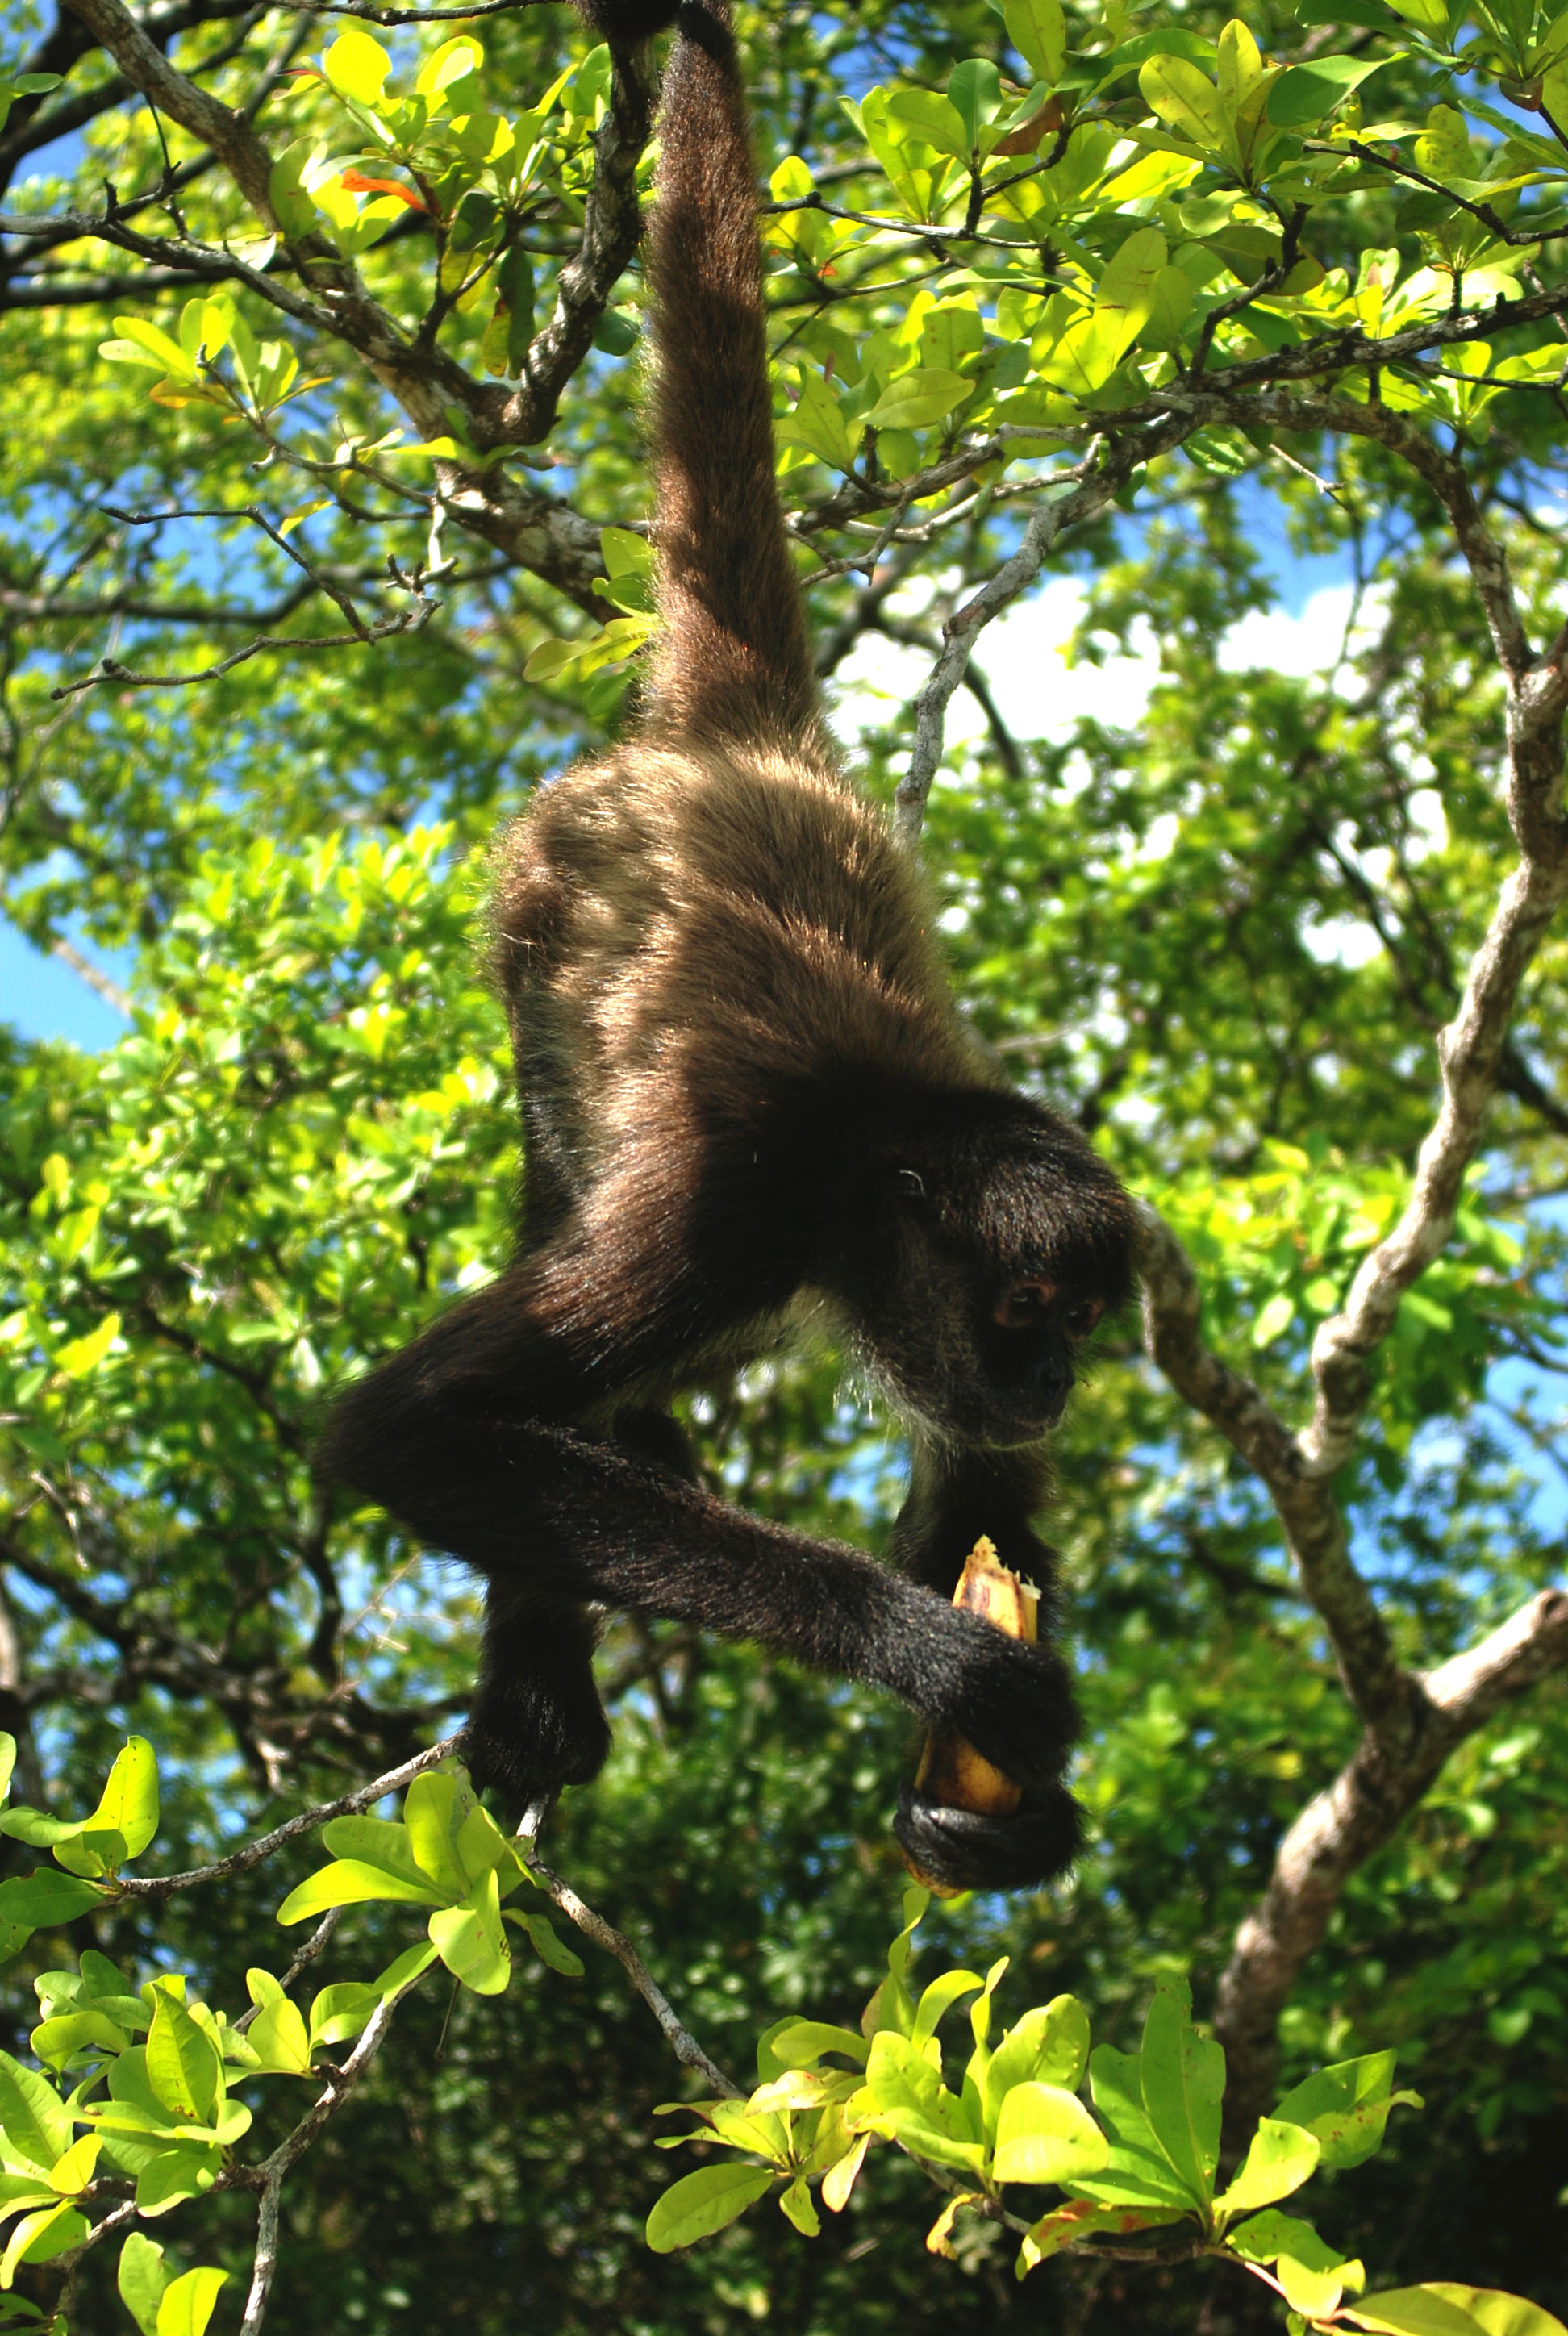 Spider Monkey eating plantain